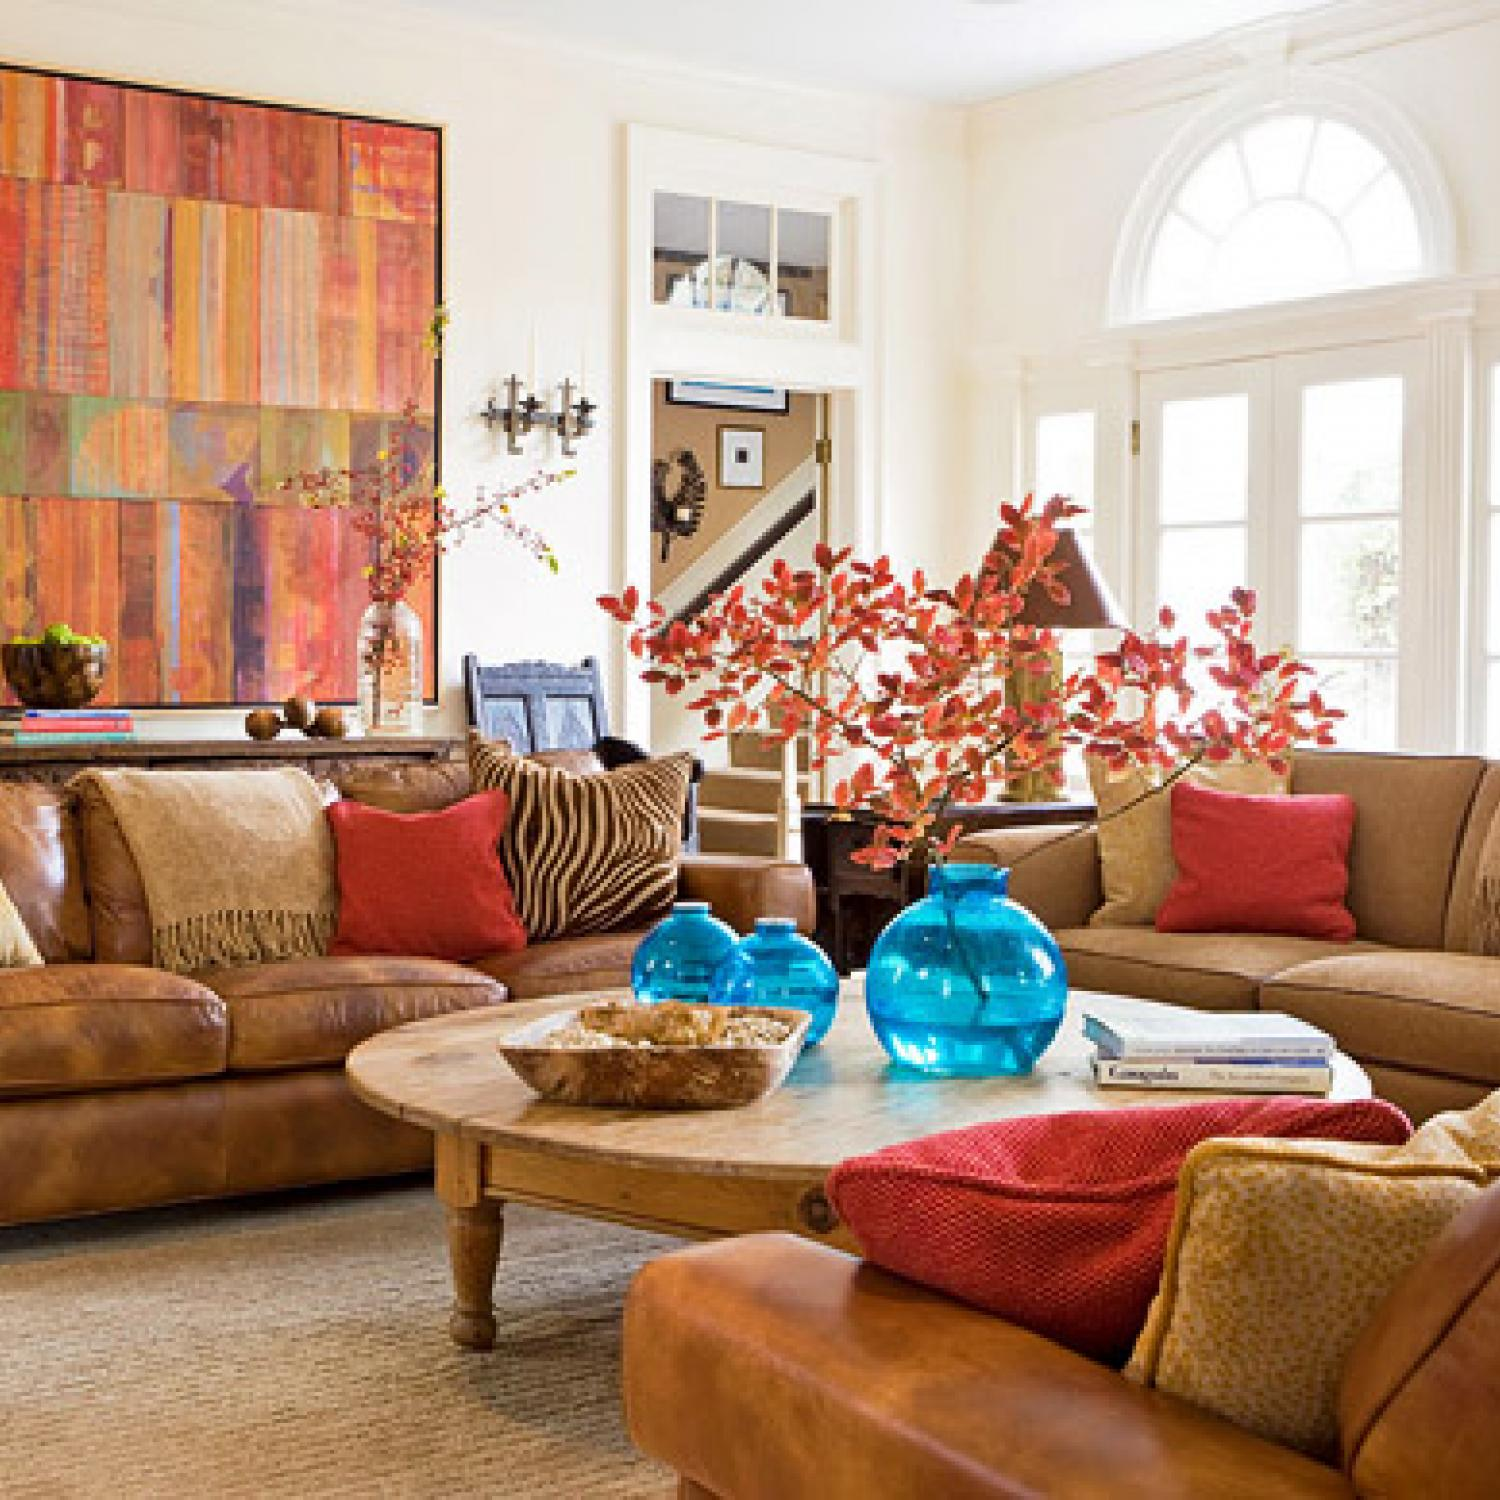 Home Design Ideas For Living Room: Gorgeous, Updated Classic Home